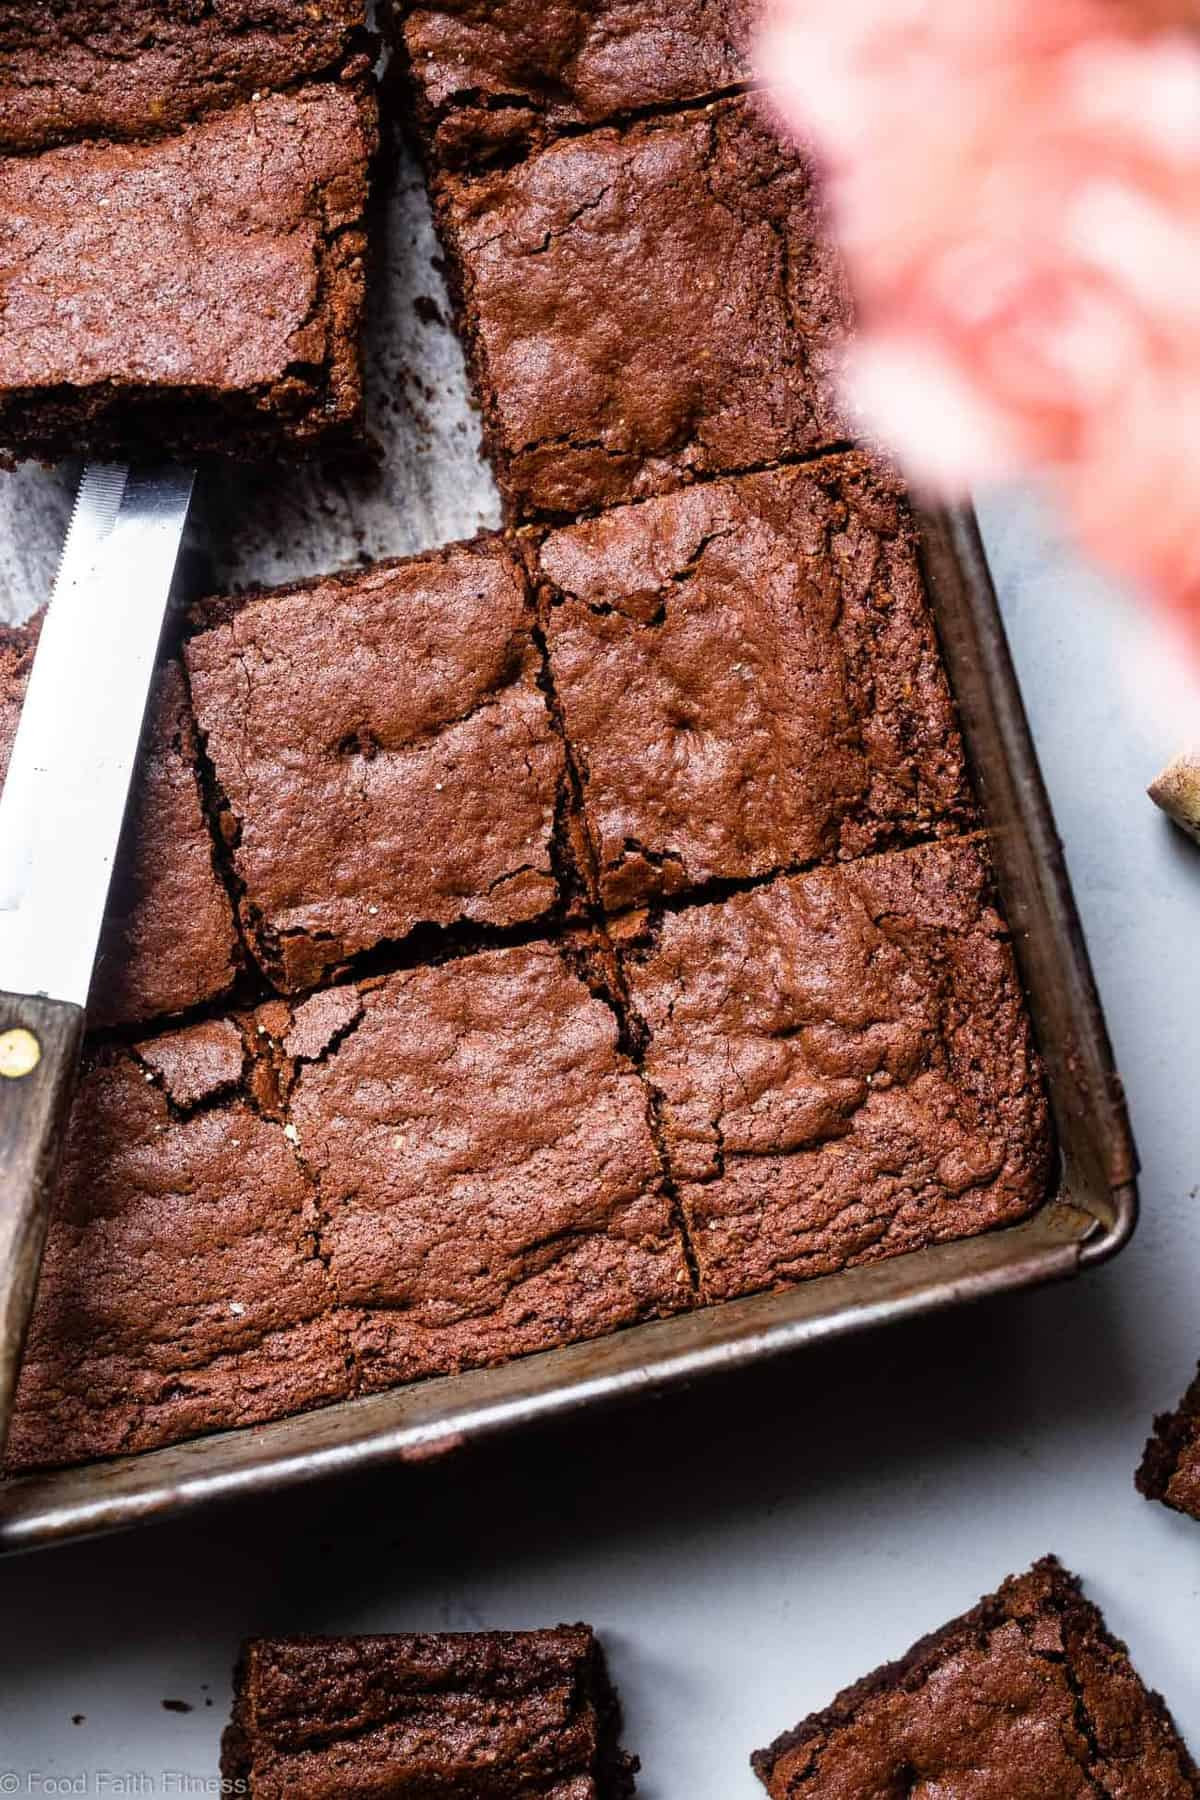 Easy Gluten Free Brownies - These grain free, healthy brownies come together in less than an hour and are SO dense, chewy and FUDGY! Paleo friendly, gluten and dairy free and SO delicious! | #Foodfaithfitness |